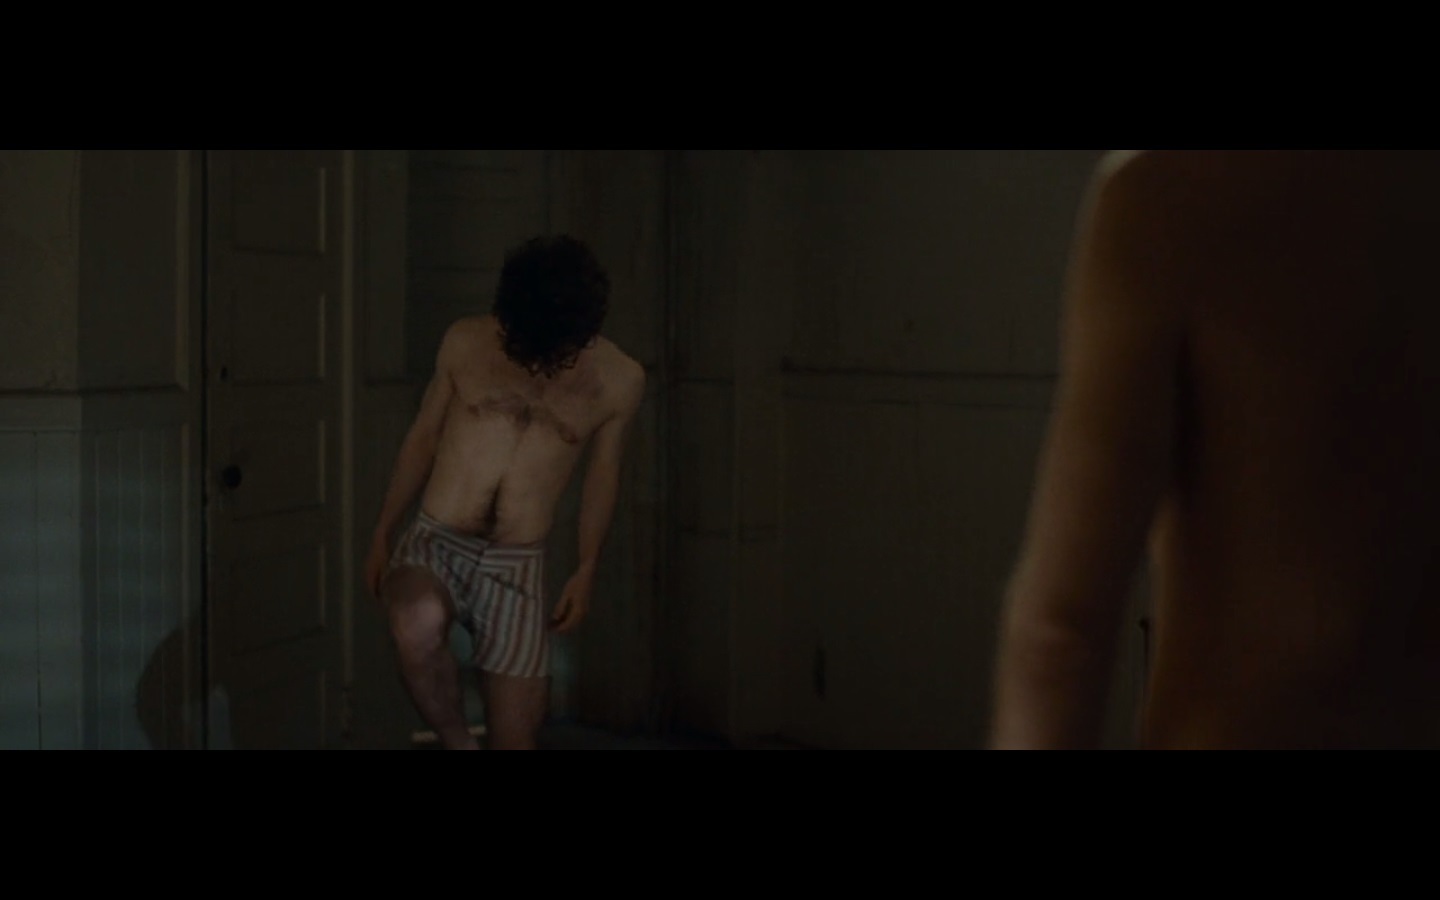 Apologise, but, Shirtless daniel radcliffe naked amusing moment